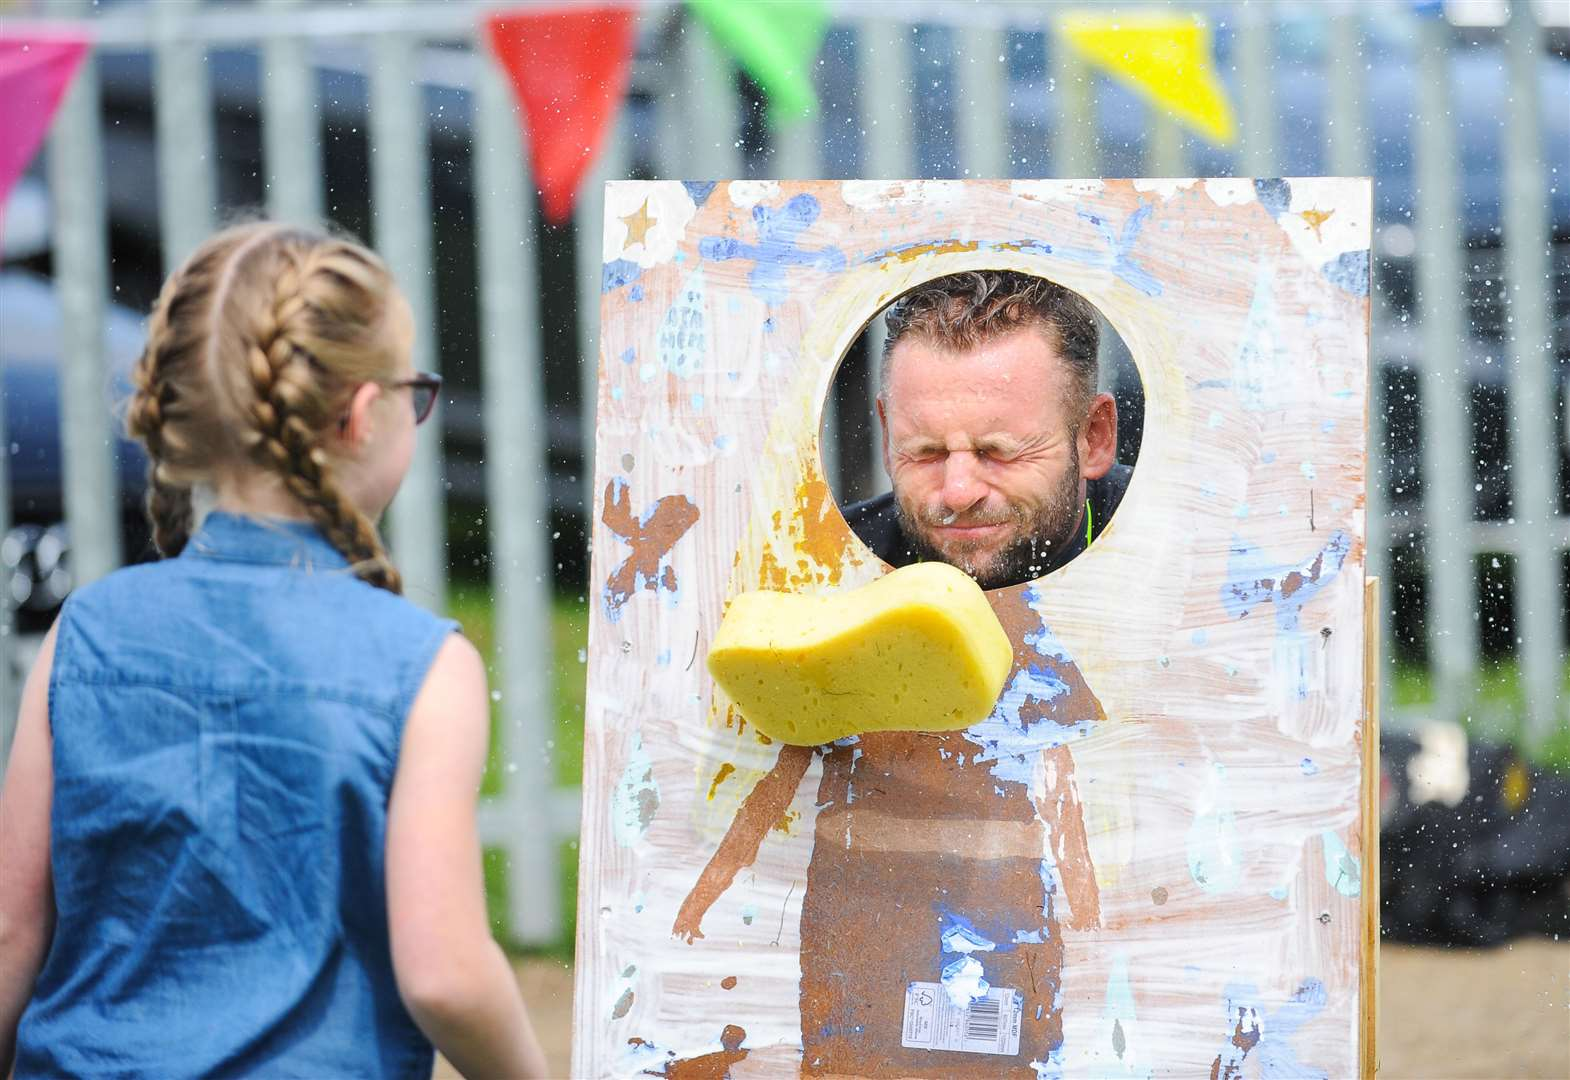 Splat the teacher! At Reffley Academy summer fair